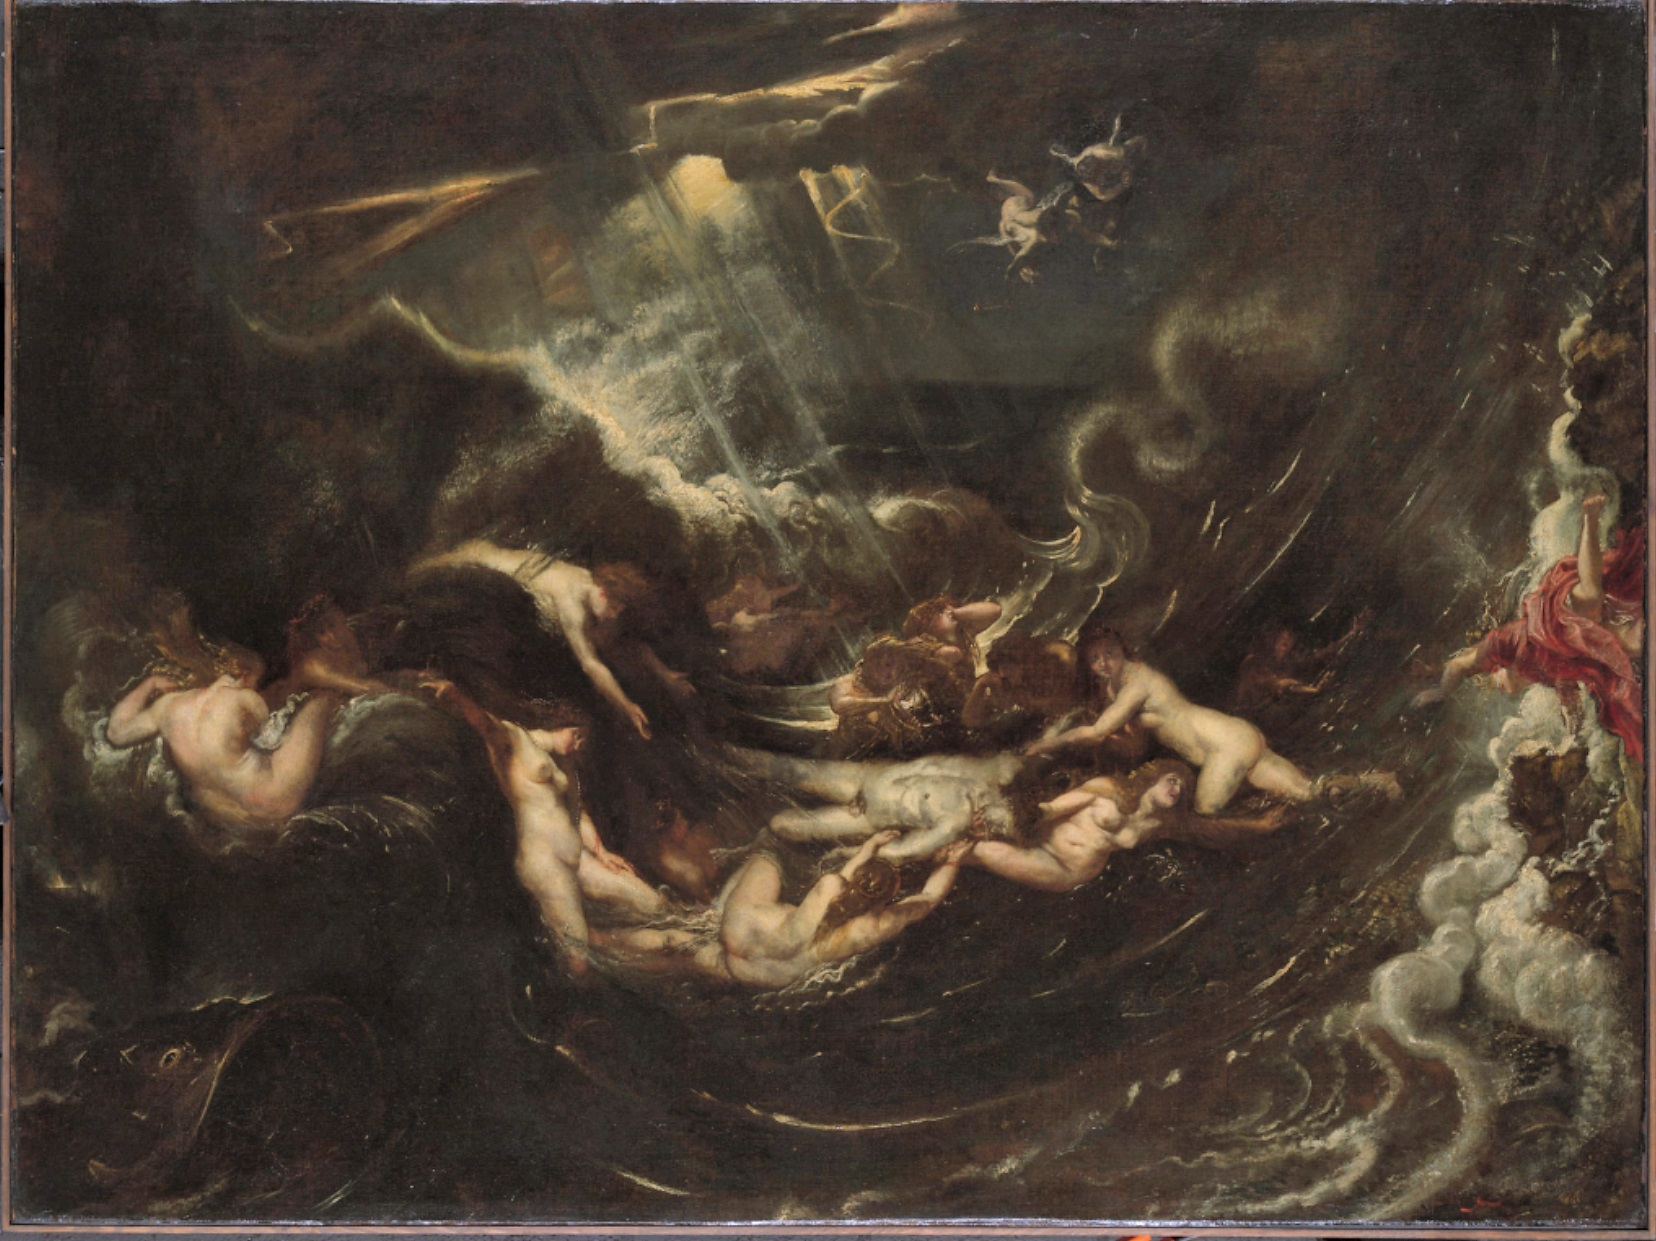 Rubens 1604-05 Hero and Leander Yale University Art Gallery